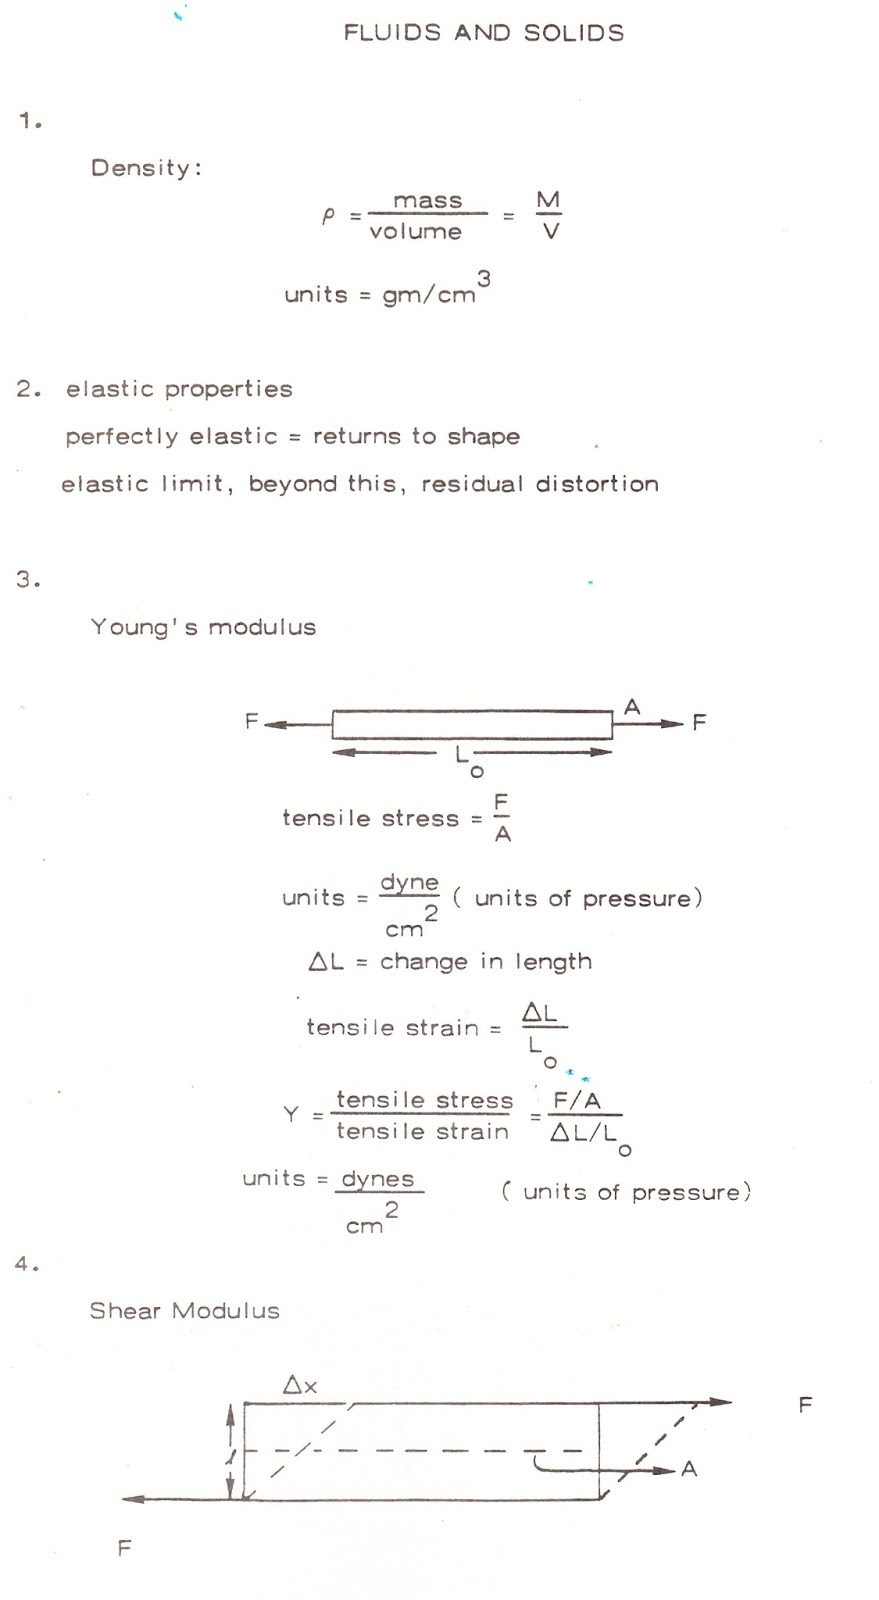 principle of material balance with chemical reaction biology essay 2 writing the synoptic essay aqa a2 biology: writing the synoptic essay by dr  robert  ct publications is owned by chemistry tutorials located at the same  address  affording or taking a general view of the principal parts of a subject   phosphate, the carbon atom then undergoes a condensation reaction to form.